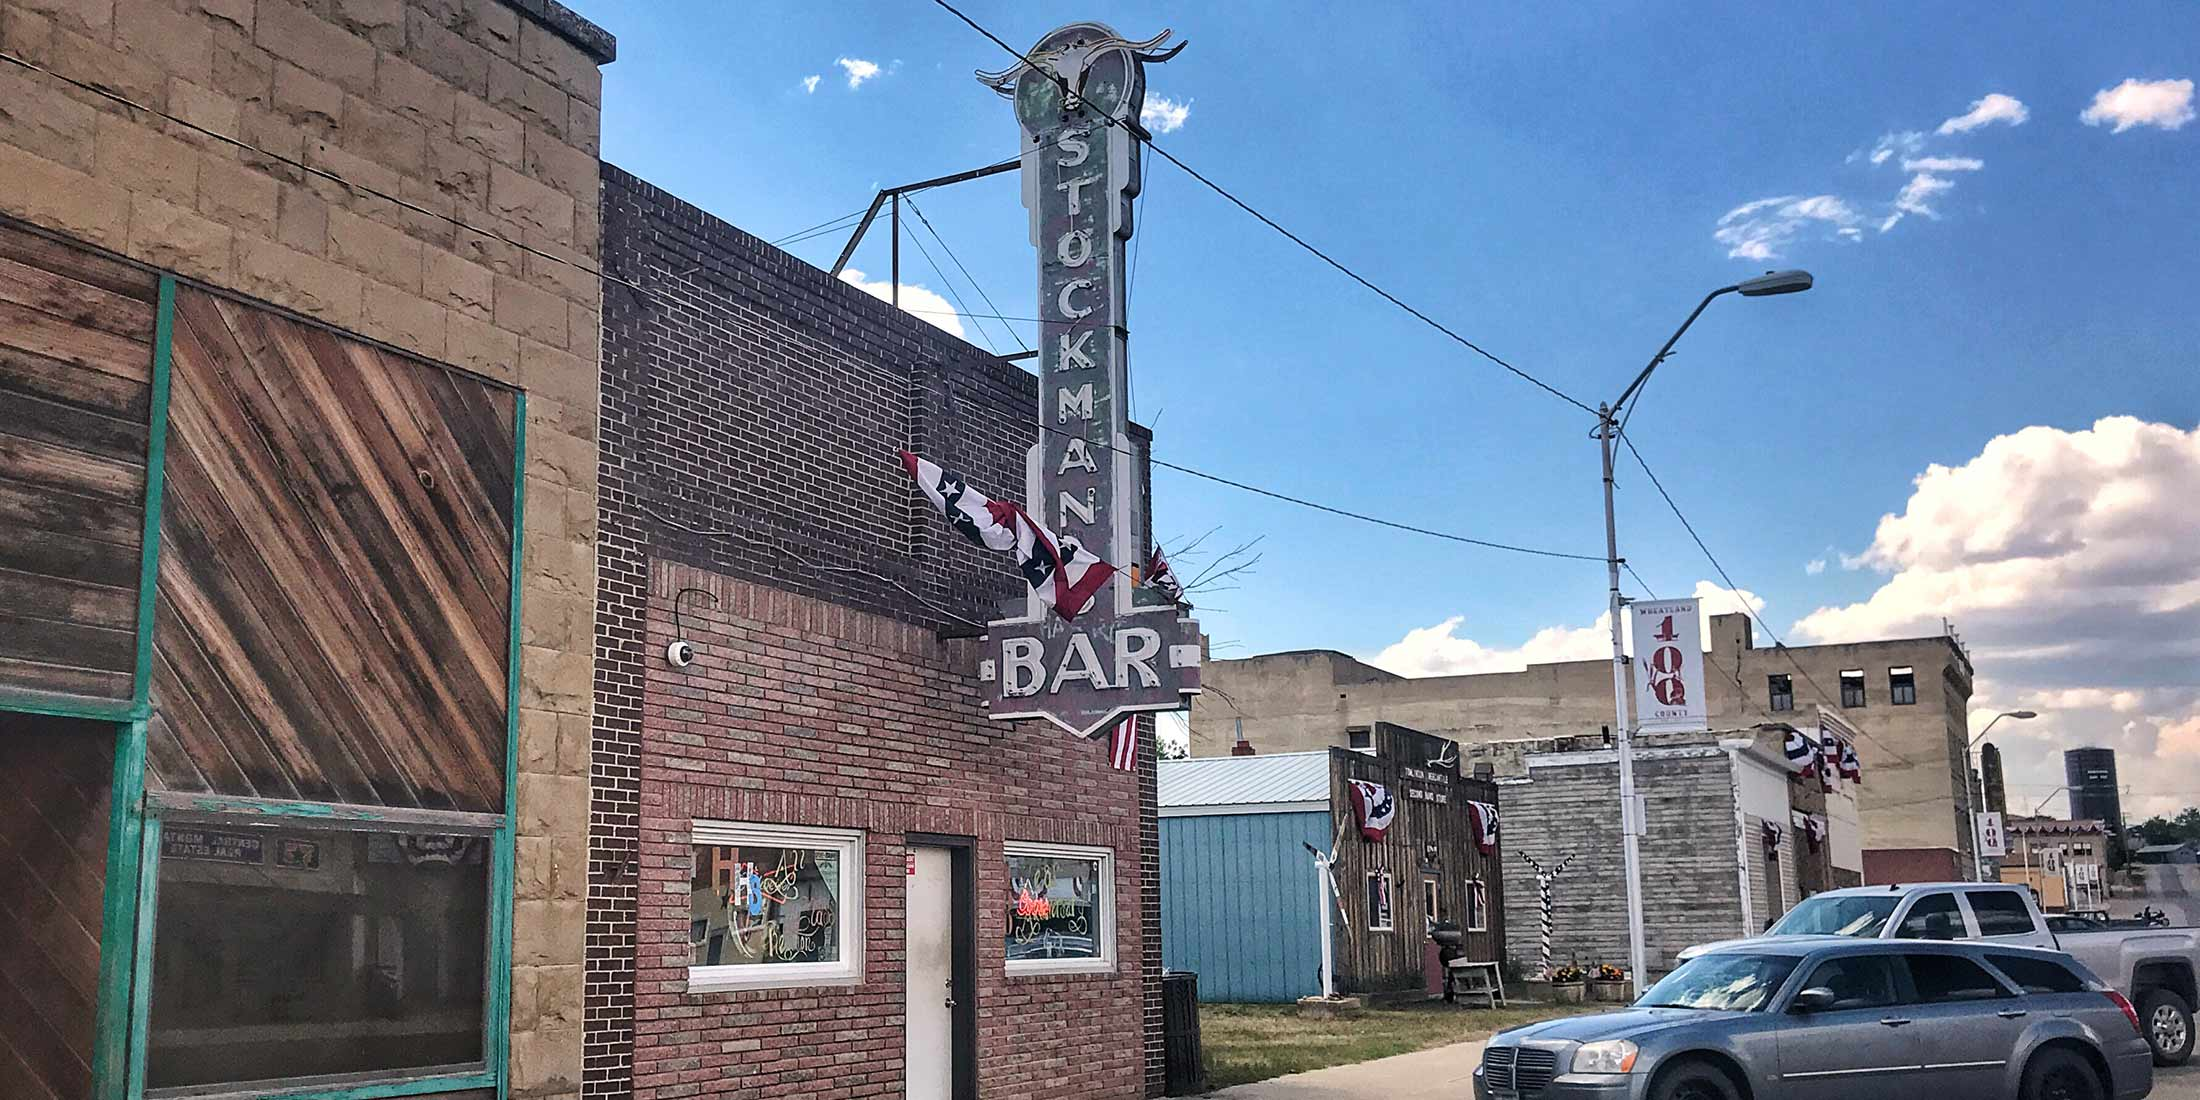 Information about the hours and location of Stockman's Bar located in Harlowton, Montana on highway 12 - Wheatland County.